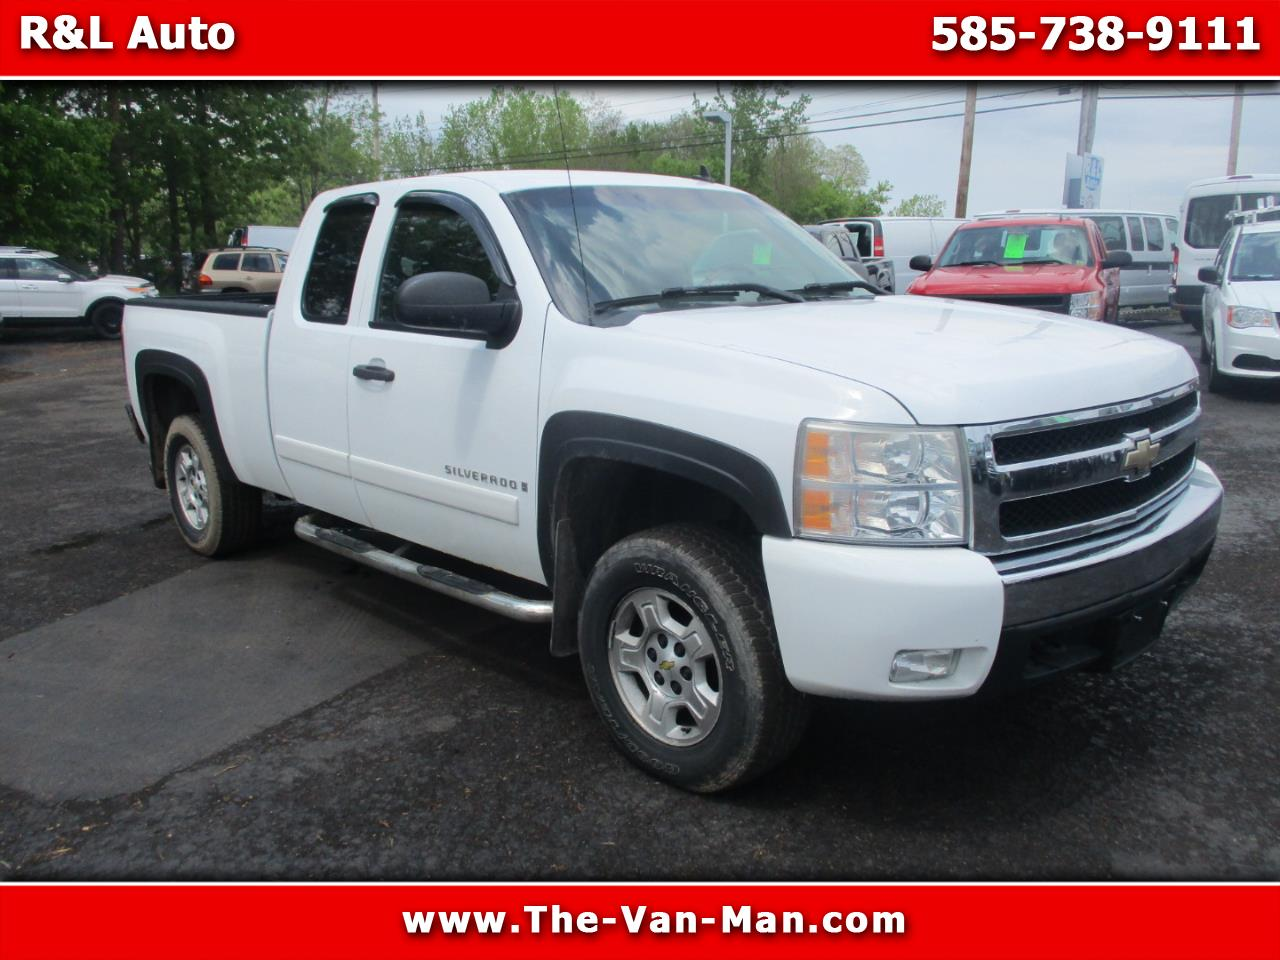 2008 Chevrolet Silverado 1500 Work Truck Ext. Cab Short Box 4WD